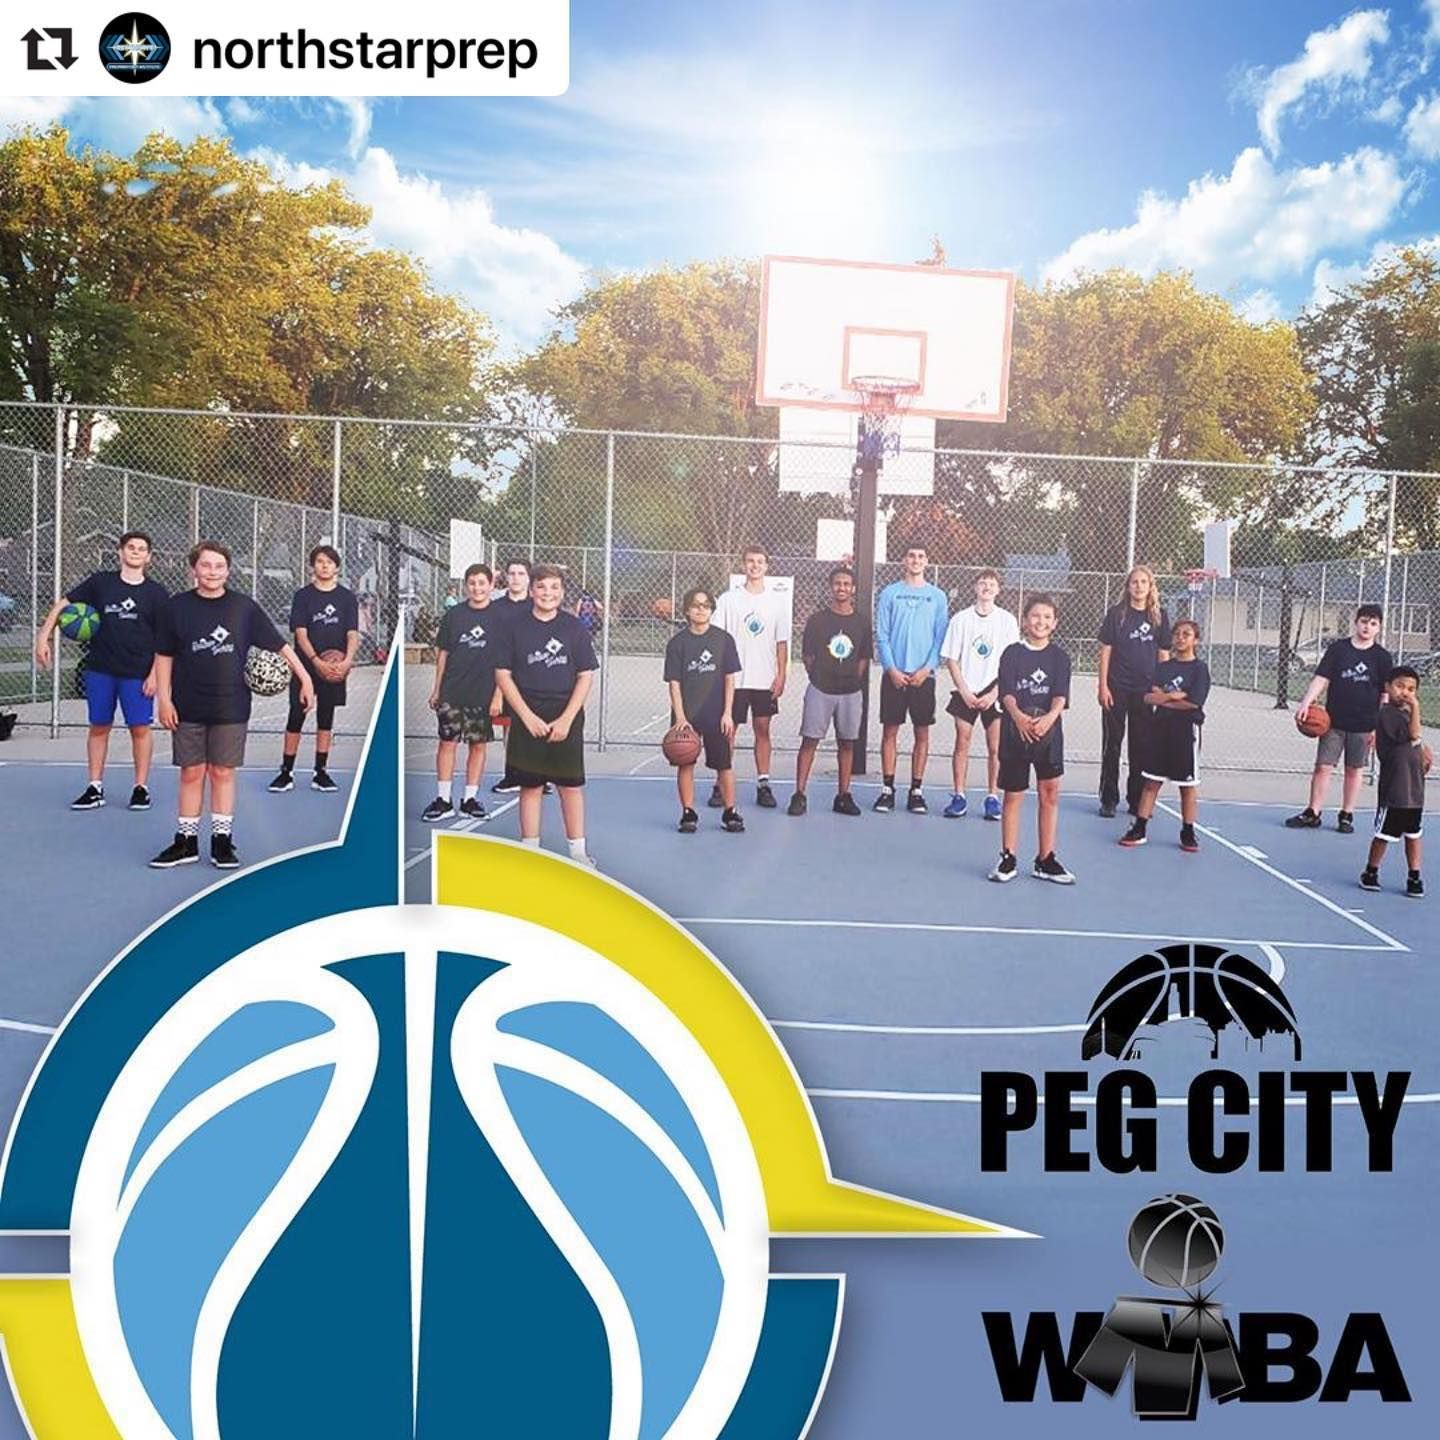 Northstarprep Summer Training Great Job By Our Staff And Participants Throughout July Corydon Garden City Oxford Park Dakota And Sp In 2020 Corydon Instagram City